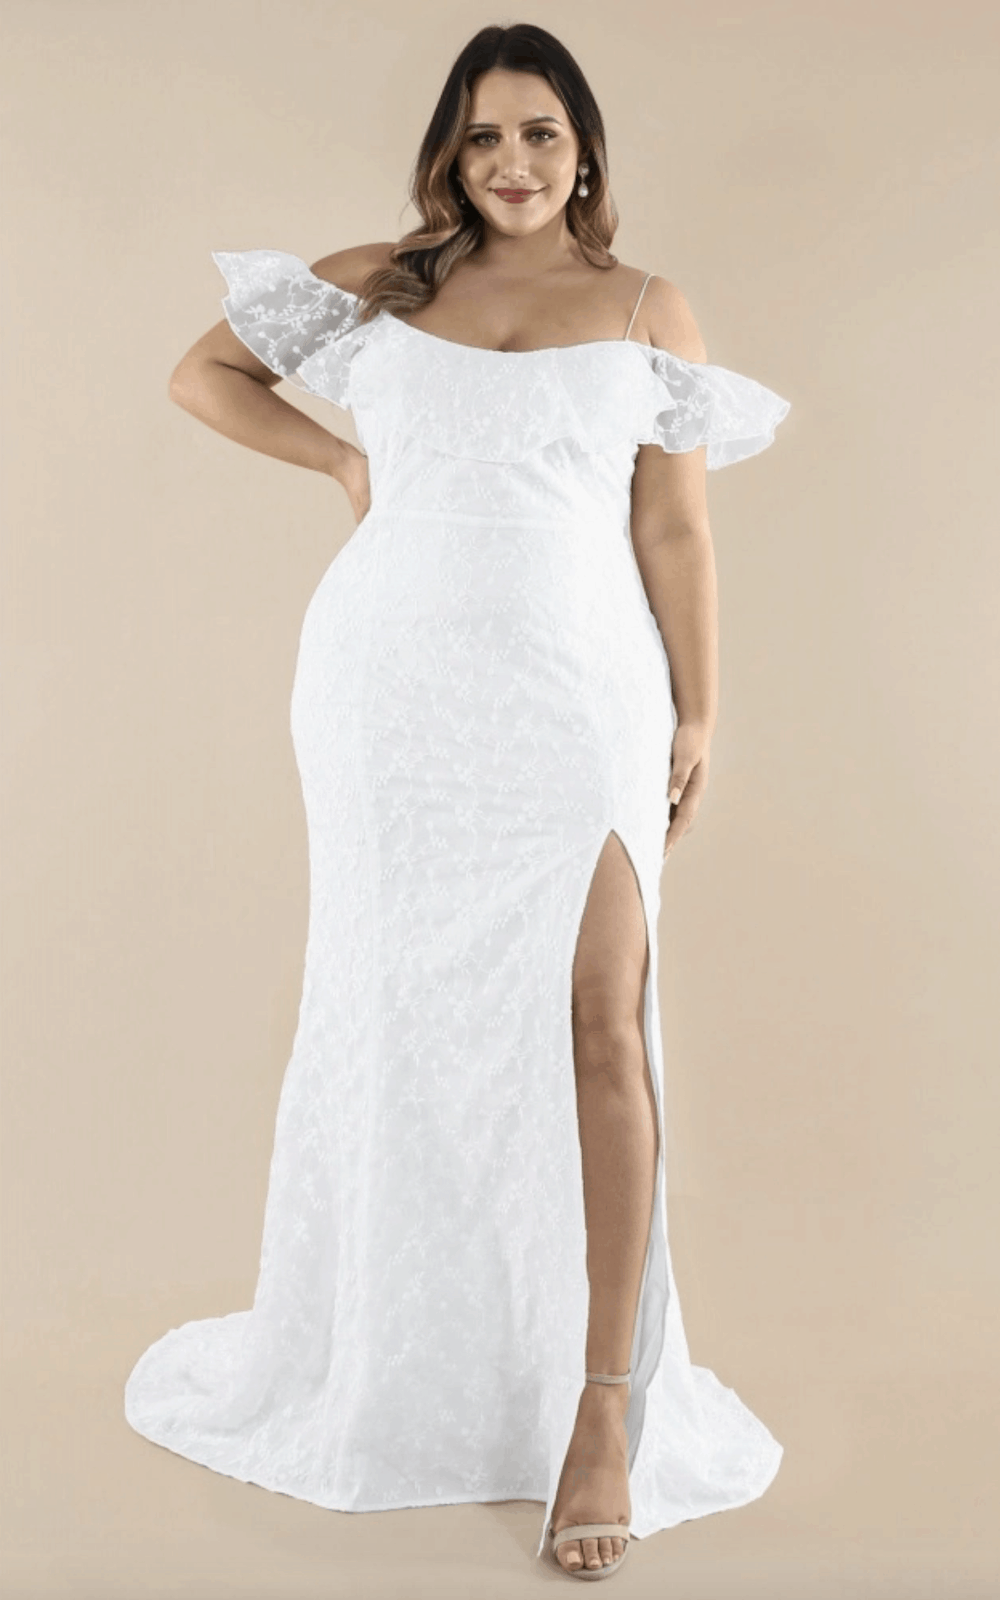 30+ Plus Size Wedding Dresses and Bridal Gowns that are ...